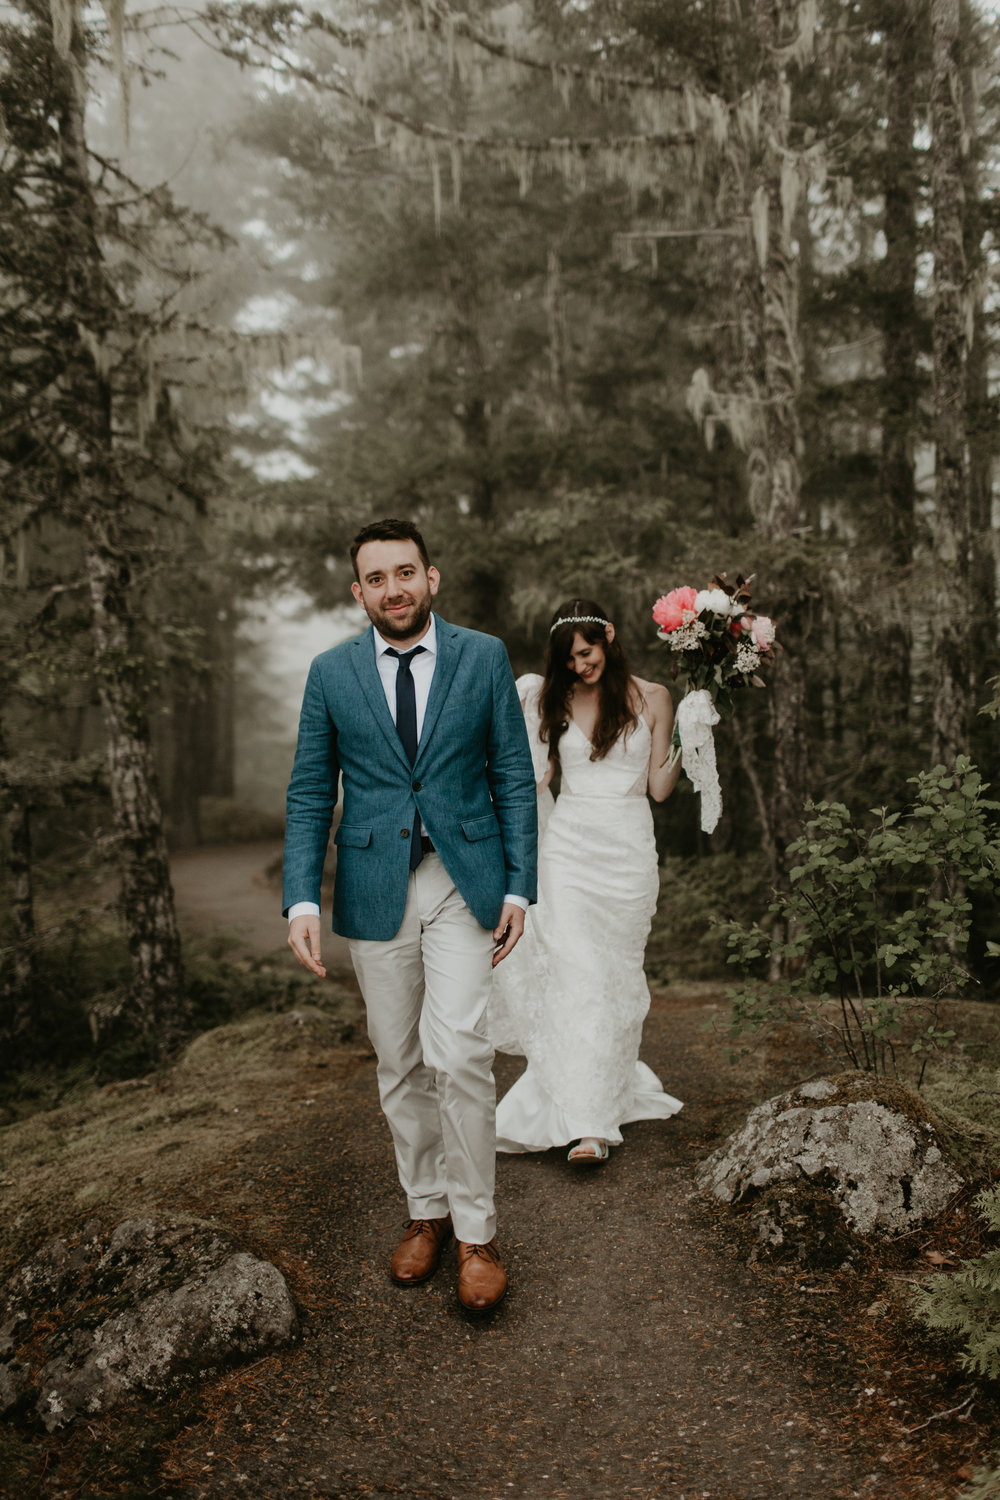 PNW-elopement-wedding-engagement-olympic national park-port angeles-hurricane ridge-lake crescent-kayla dawn photography- photographer-photography-kayladawnphoto-140.jpg